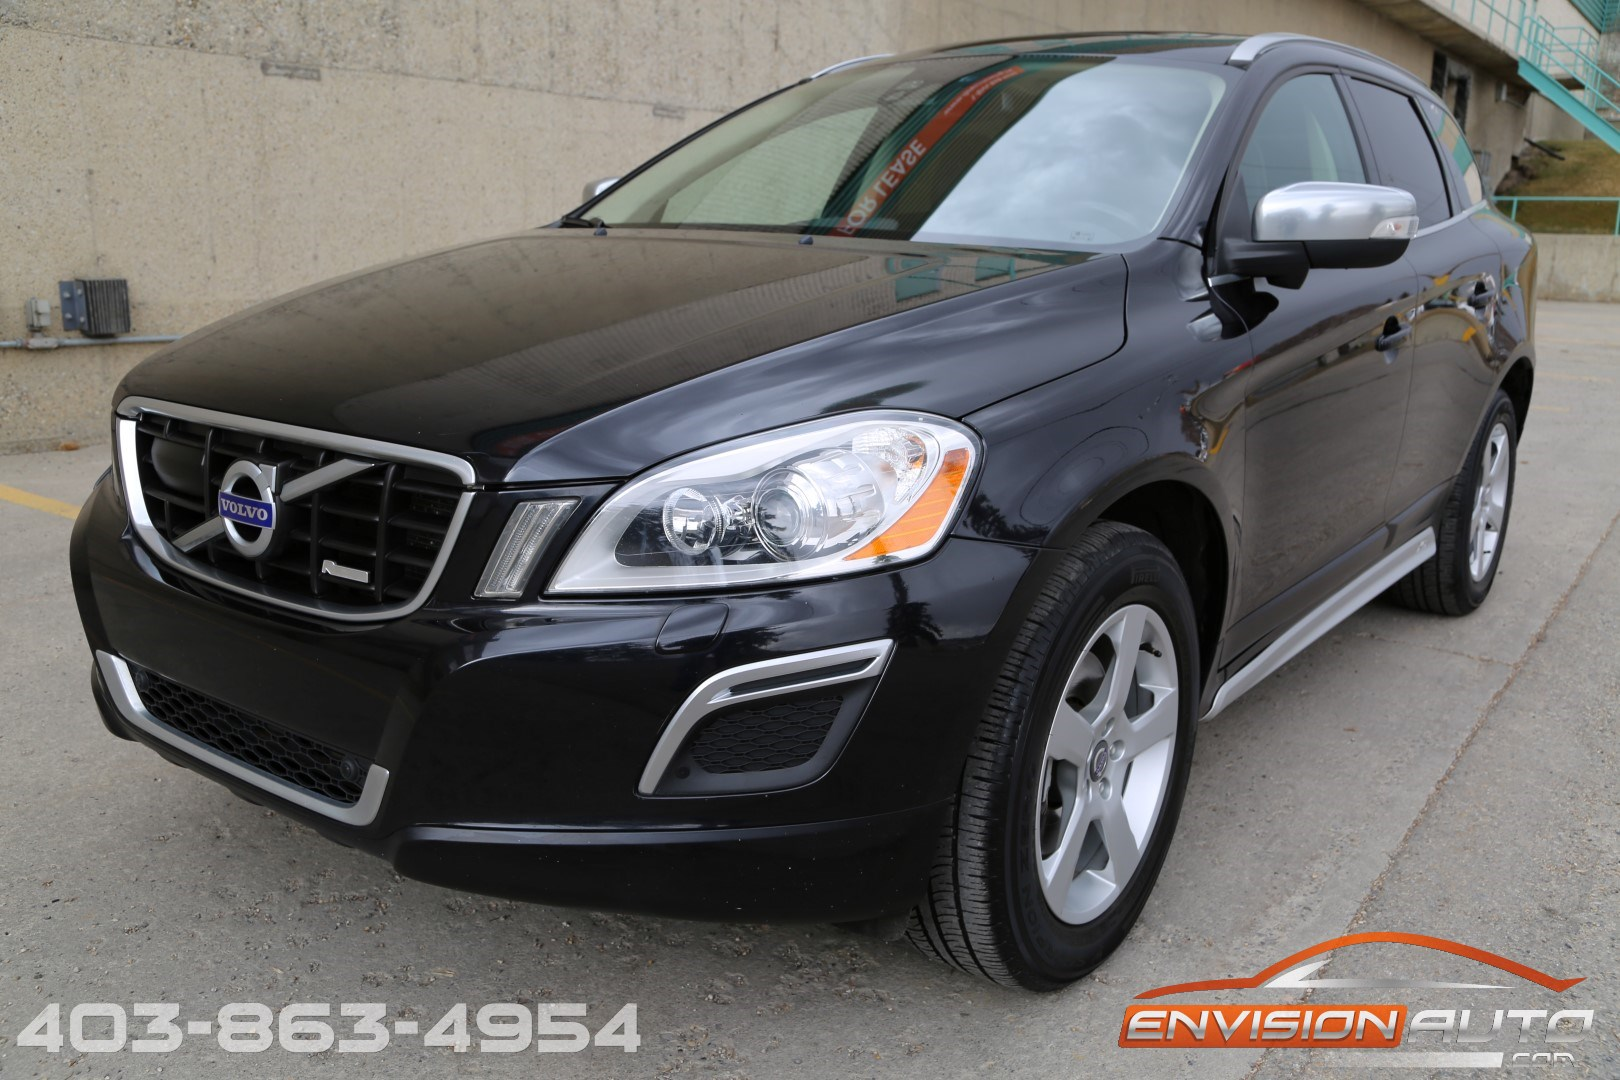 2011 Volvo XC60 T6 AWD R-Design – Tech Package - Envision Auto